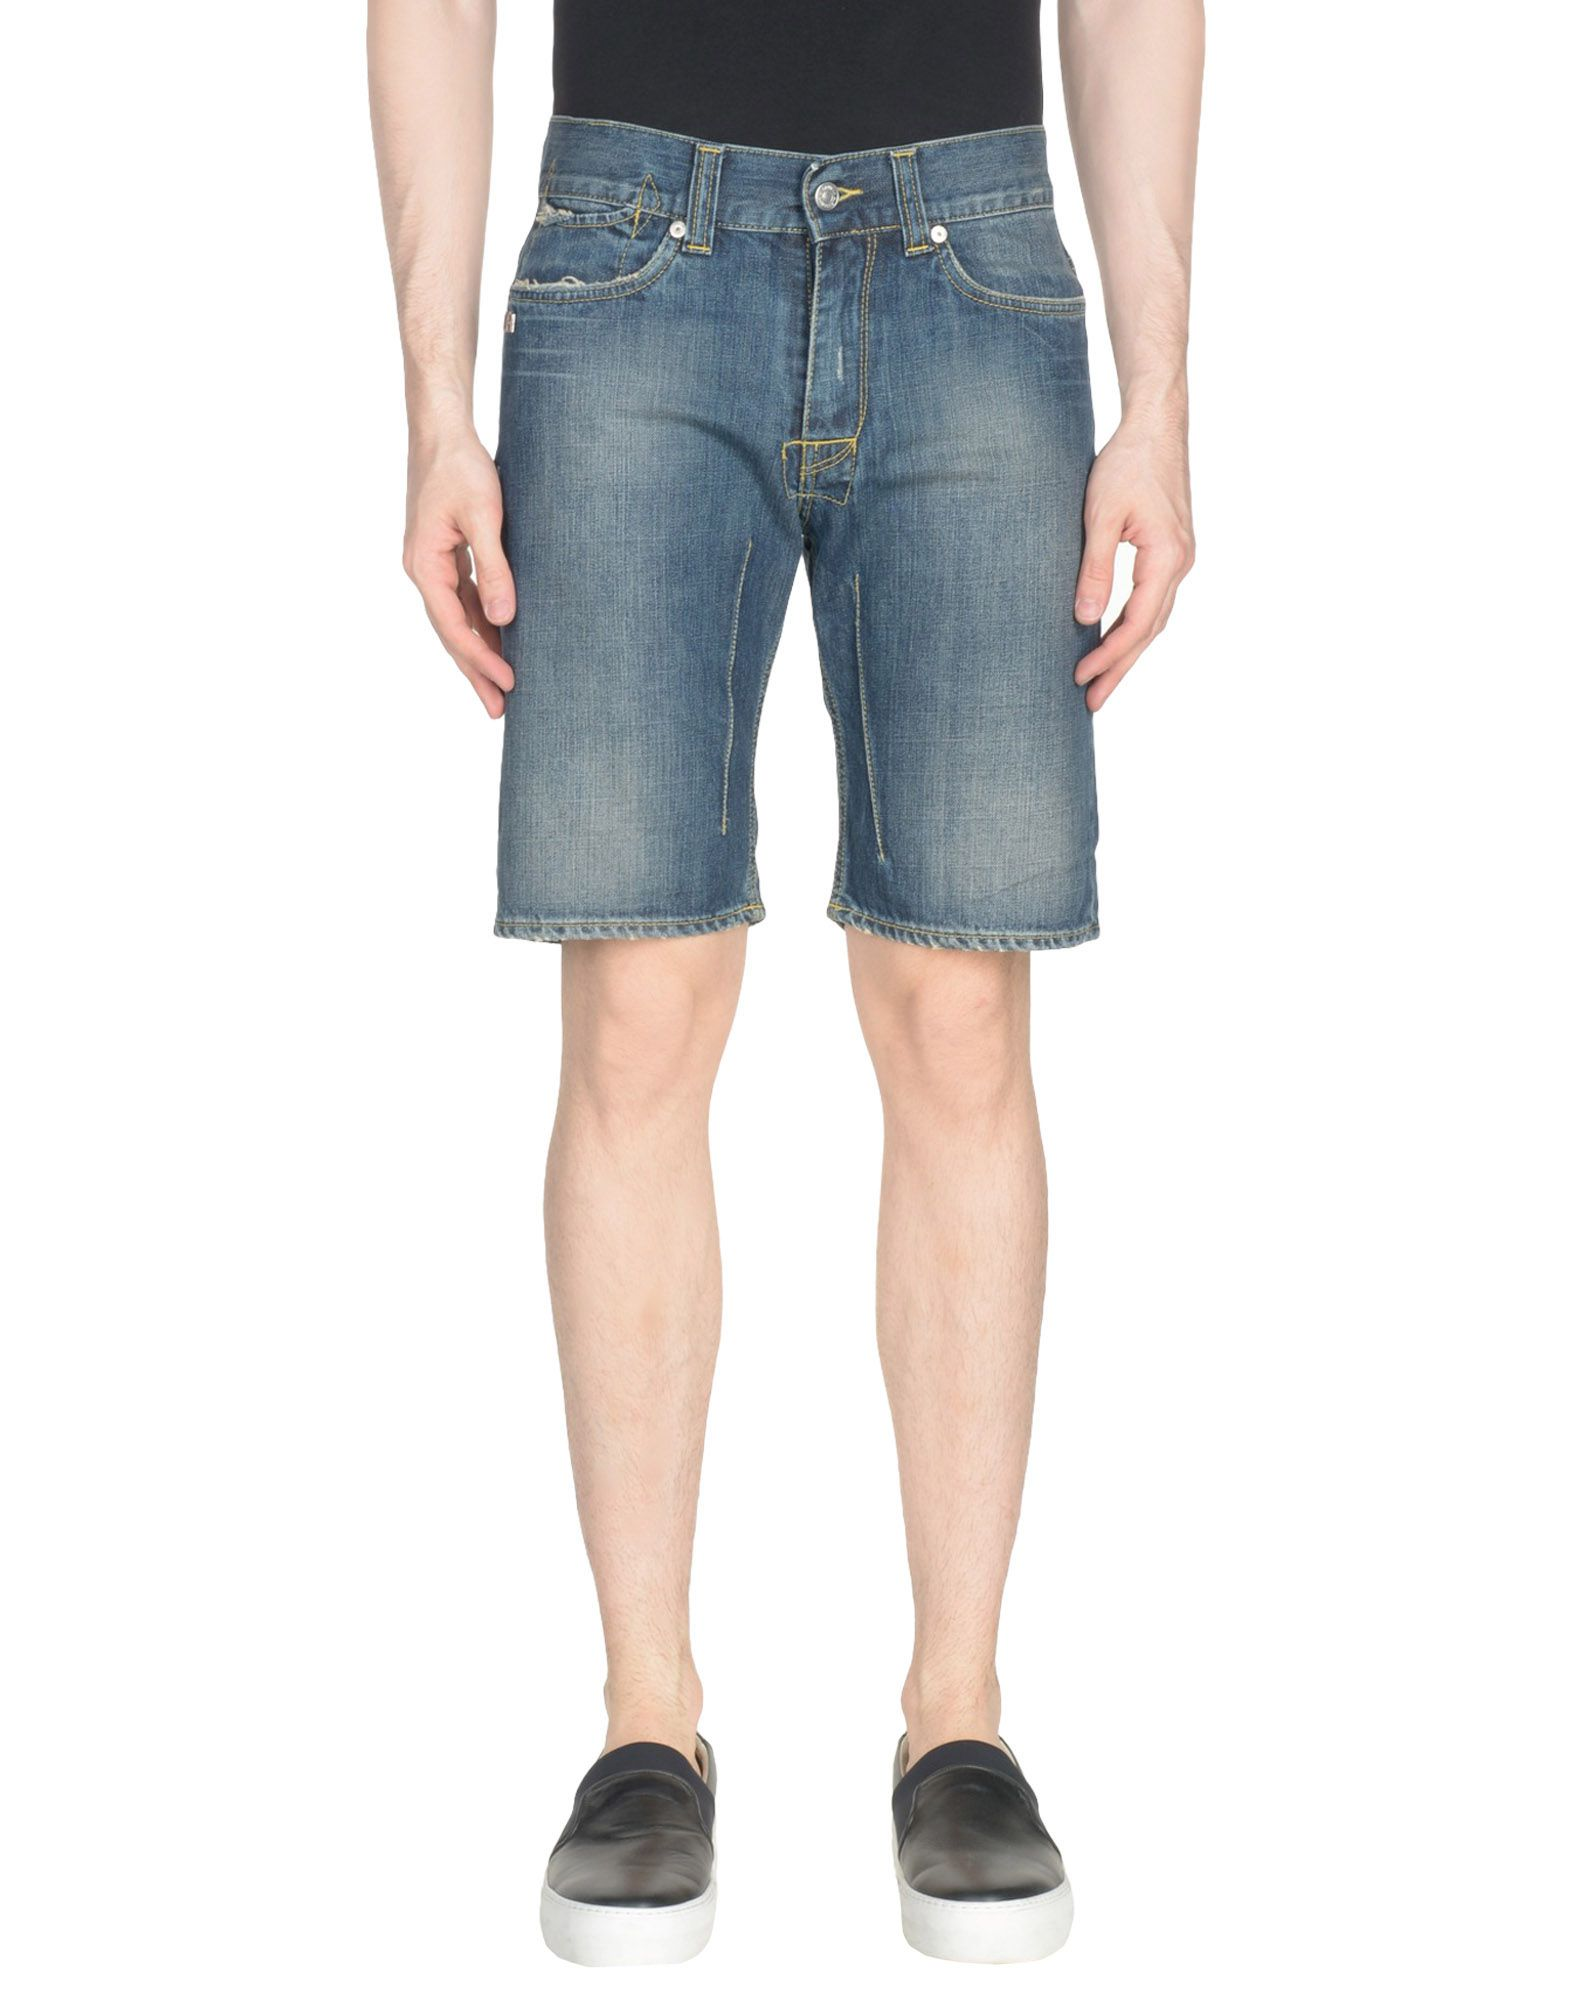 Shorts Jeans - Daniele Alessandrini Homme Uomo - Jeans 42667905LL 7ff0dd